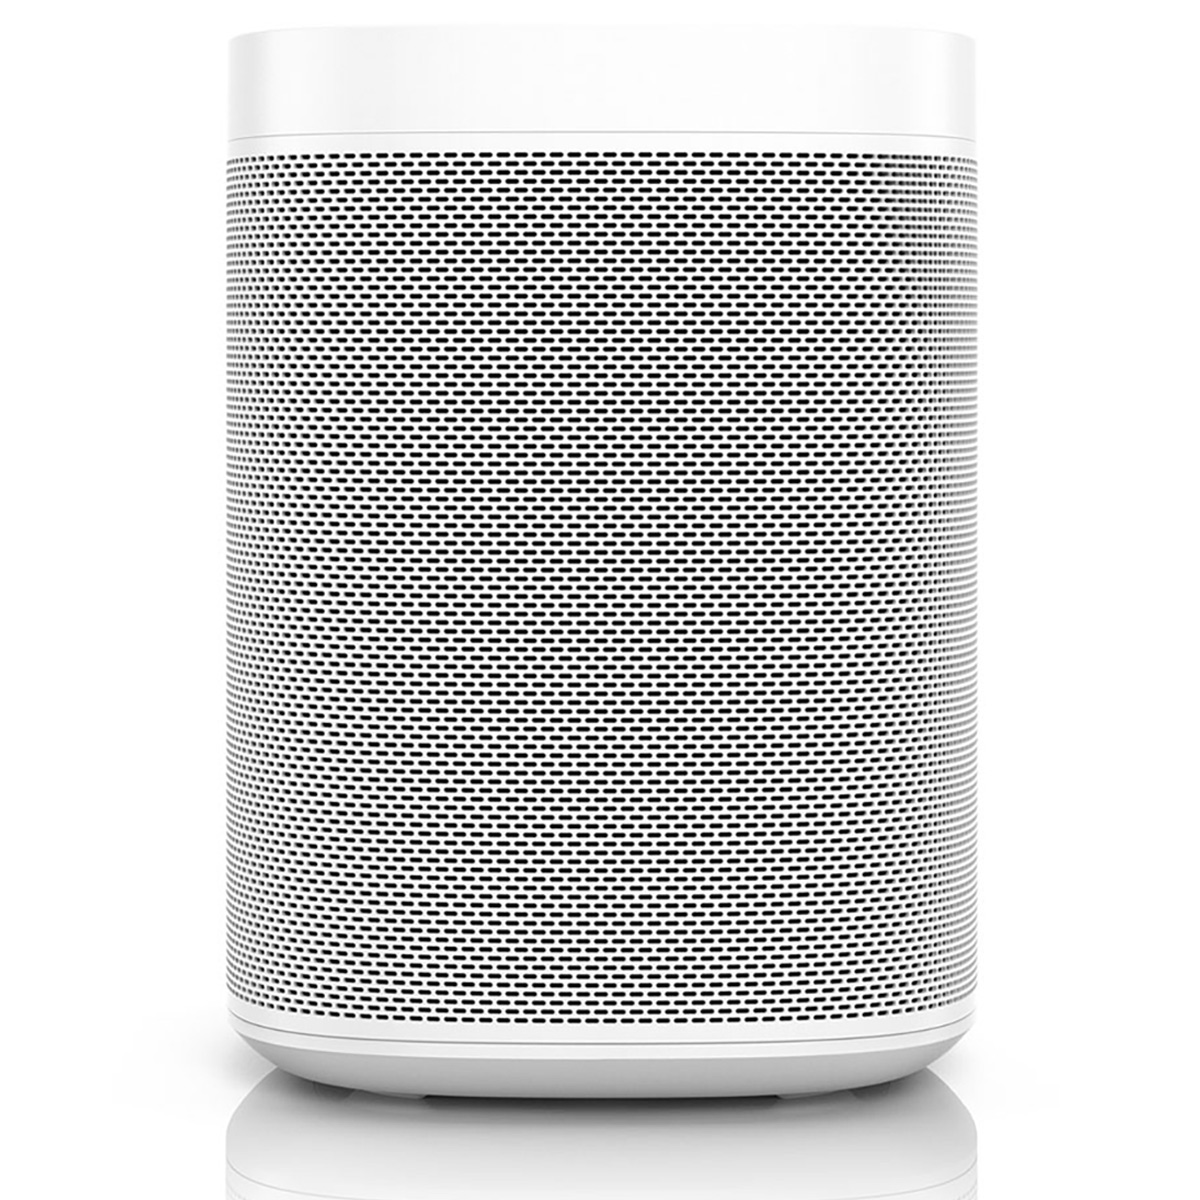 Sonos-Two-Room-Set-with-Sonos-One-Gen-2-Smart-Speaker-with-Alexa-Voice-Control thumbnail 23